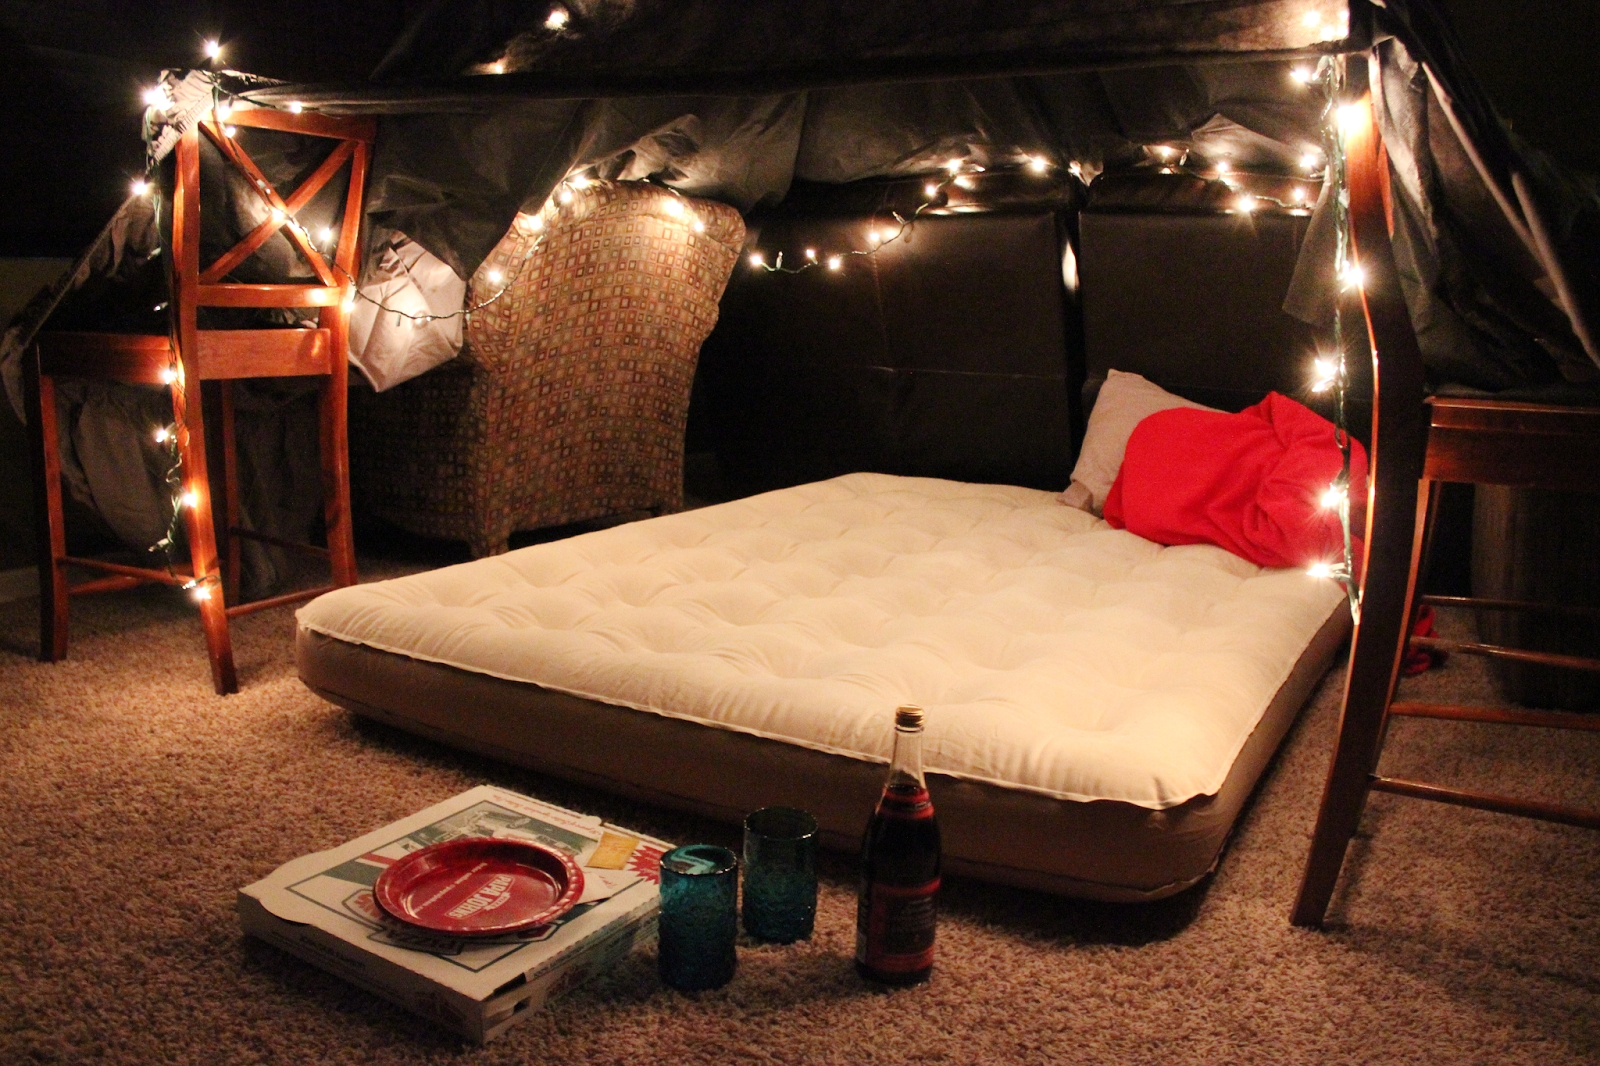 10 Wonderful Romantic Stay At Home Date Ideas 12 months of dates january romantic fort night forts romantic 2 2020